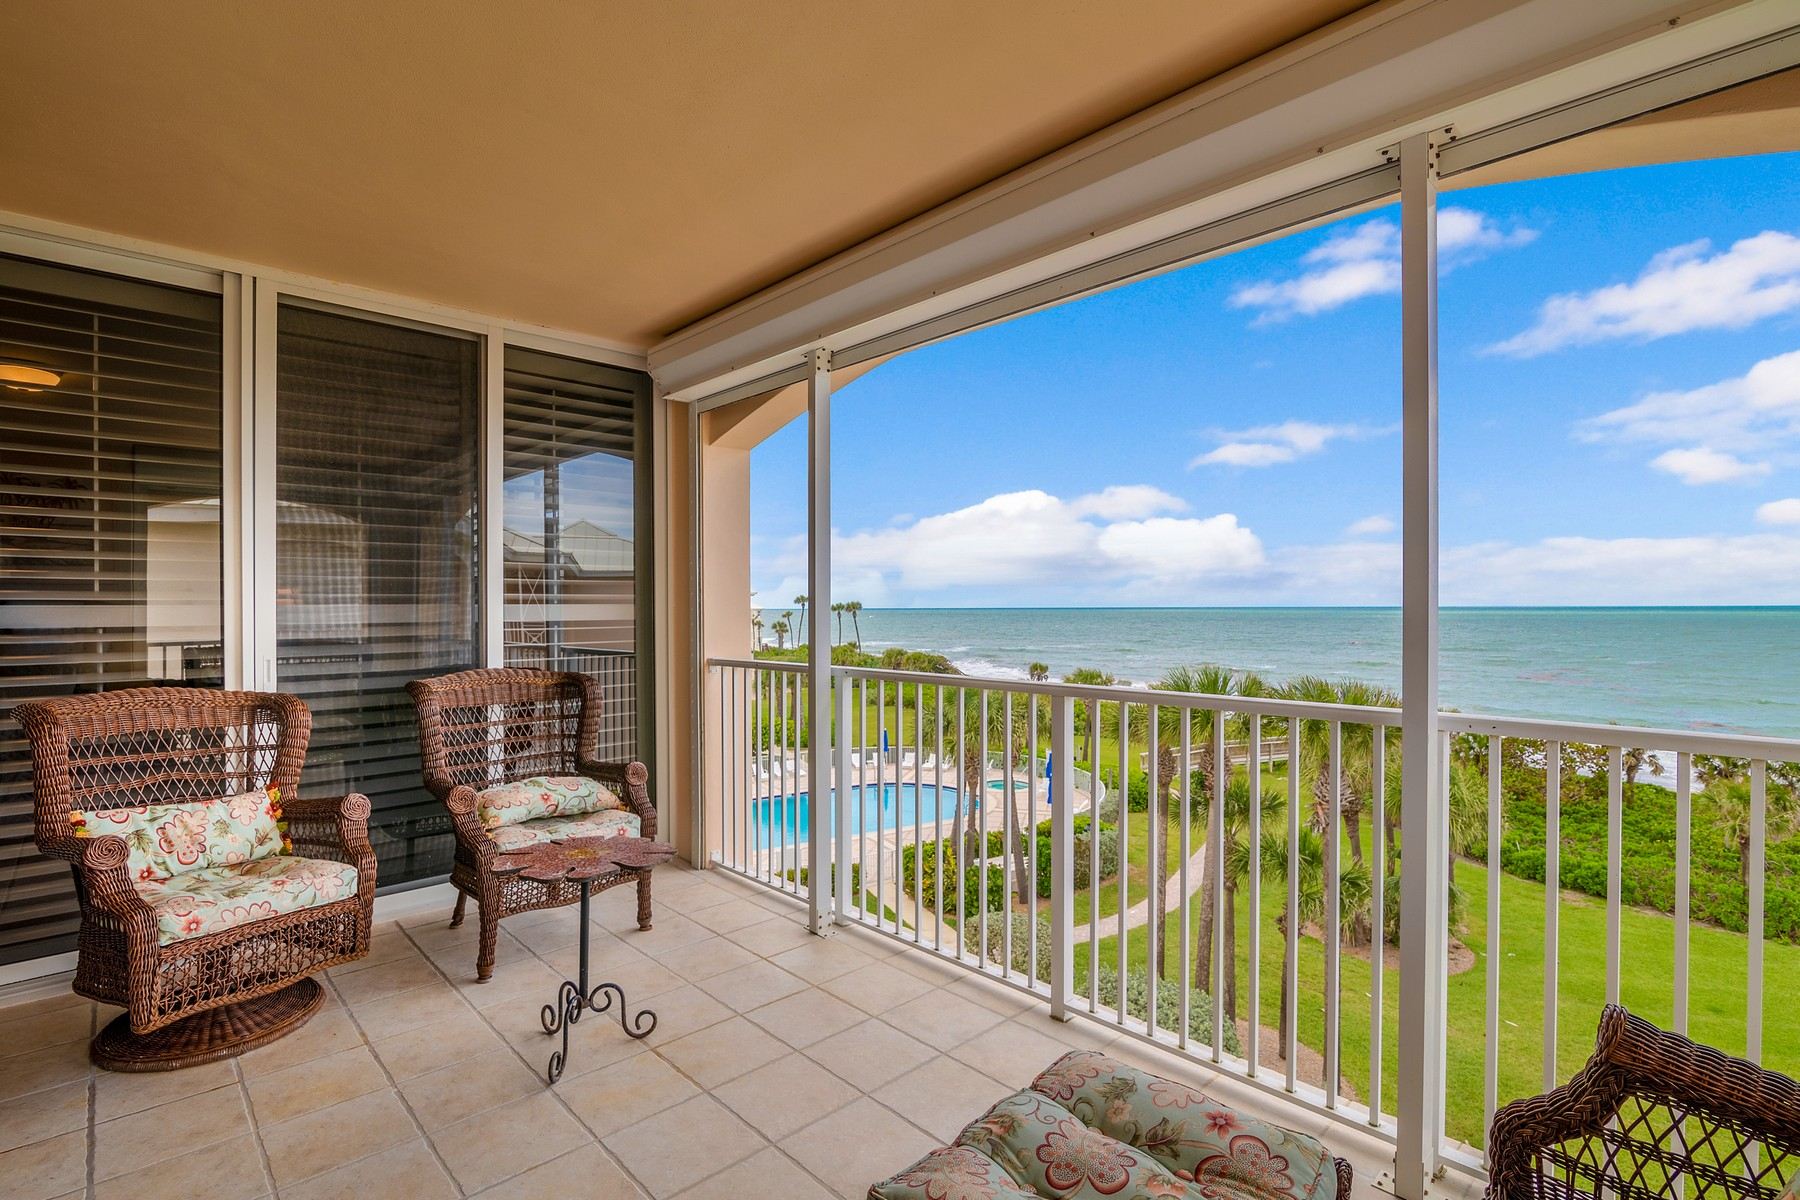 Condominiums para Venda às Top Floor Oceanfront Condo 8866 N Sea Oaks Way #212 Vero Beach, Florida 32963 Estados Unidos